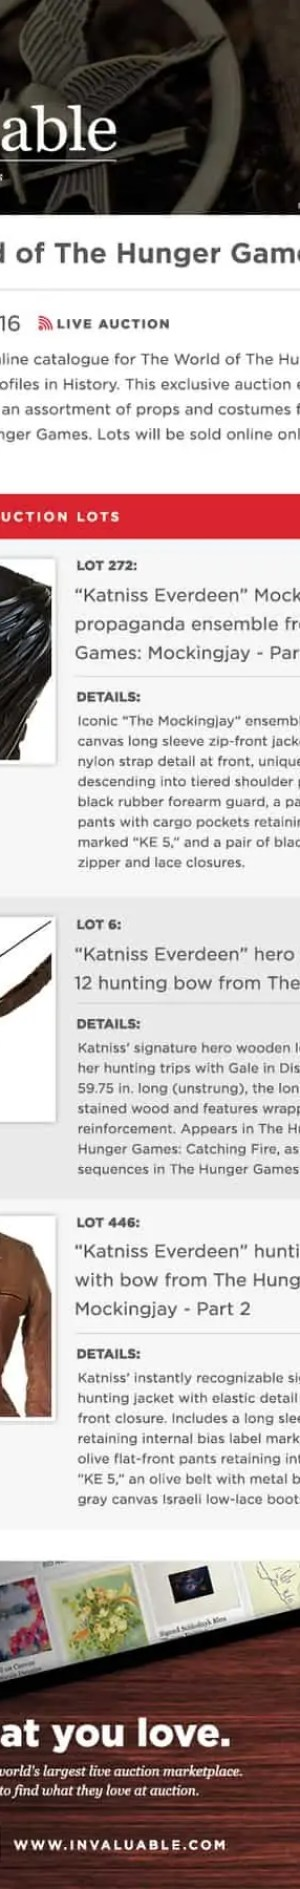 Invaluable_featured_lot_Hungergames_v02